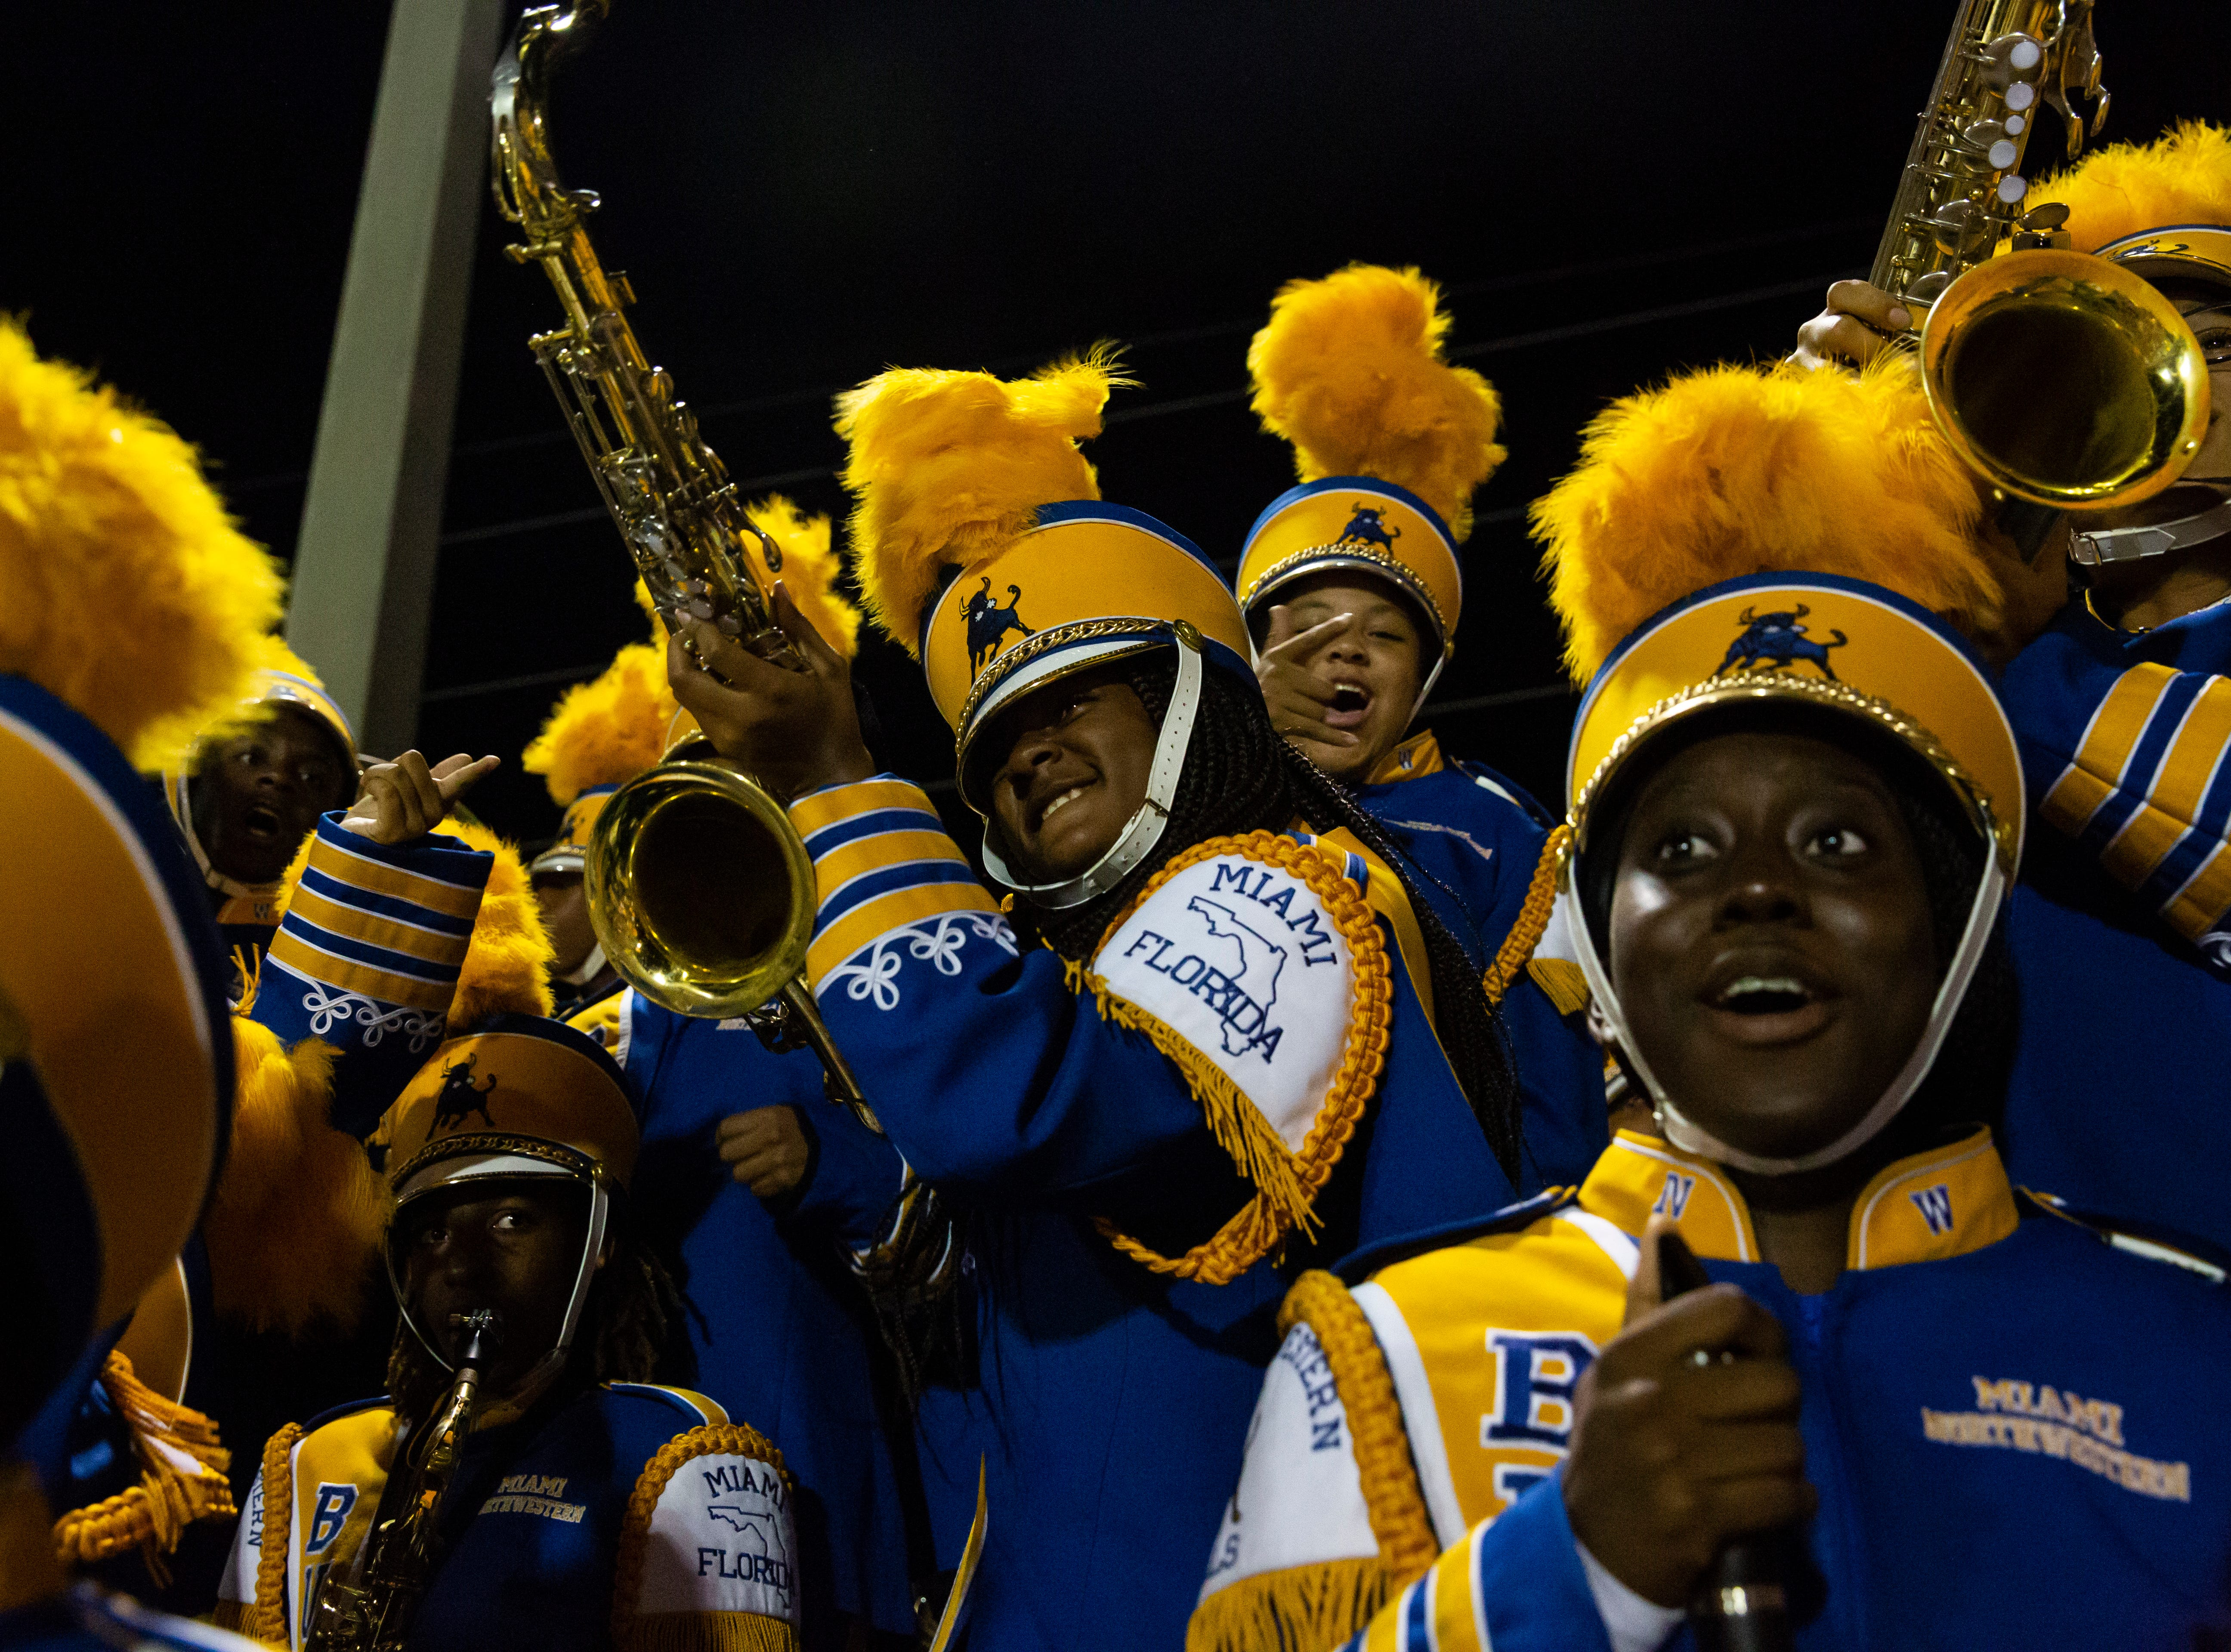 The Miami Northwestern Senior High marching band performer, Eunique Dozier, gets excited during the Class 6A state semifinals game against Naples High School on Friday, November 30, 2018, at Naples High School in Naples.